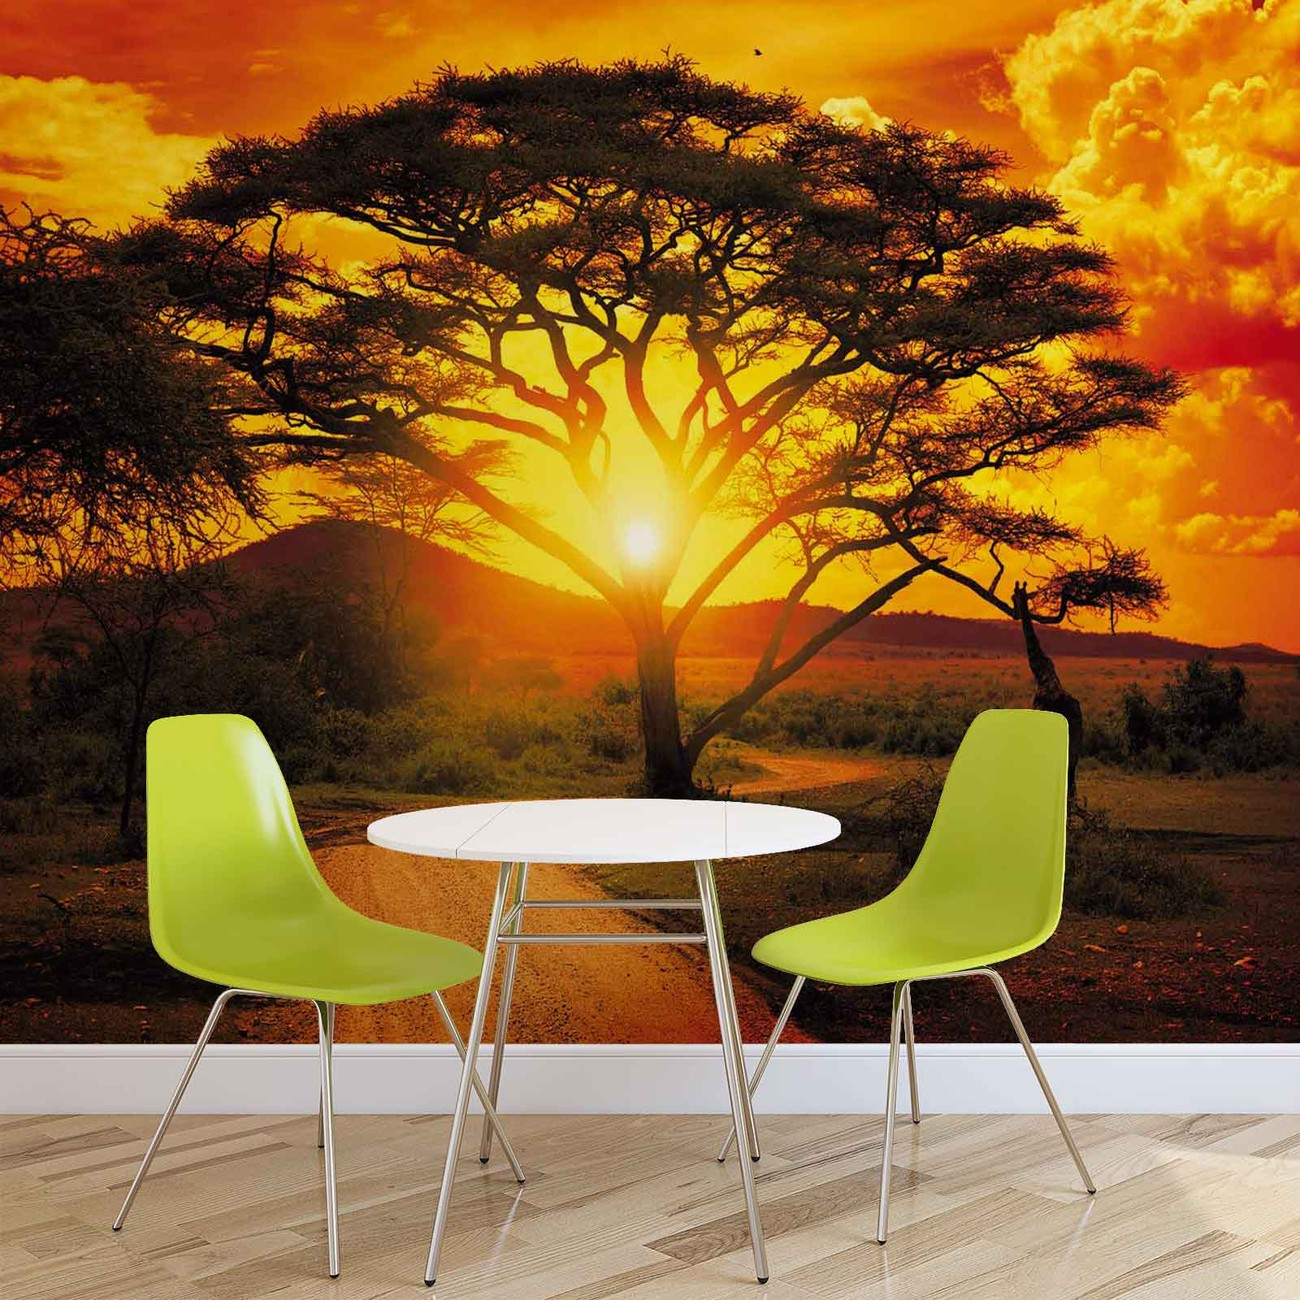 sunset africa nature tree wall paper mural buy at europosters. Black Bedroom Furniture Sets. Home Design Ideas